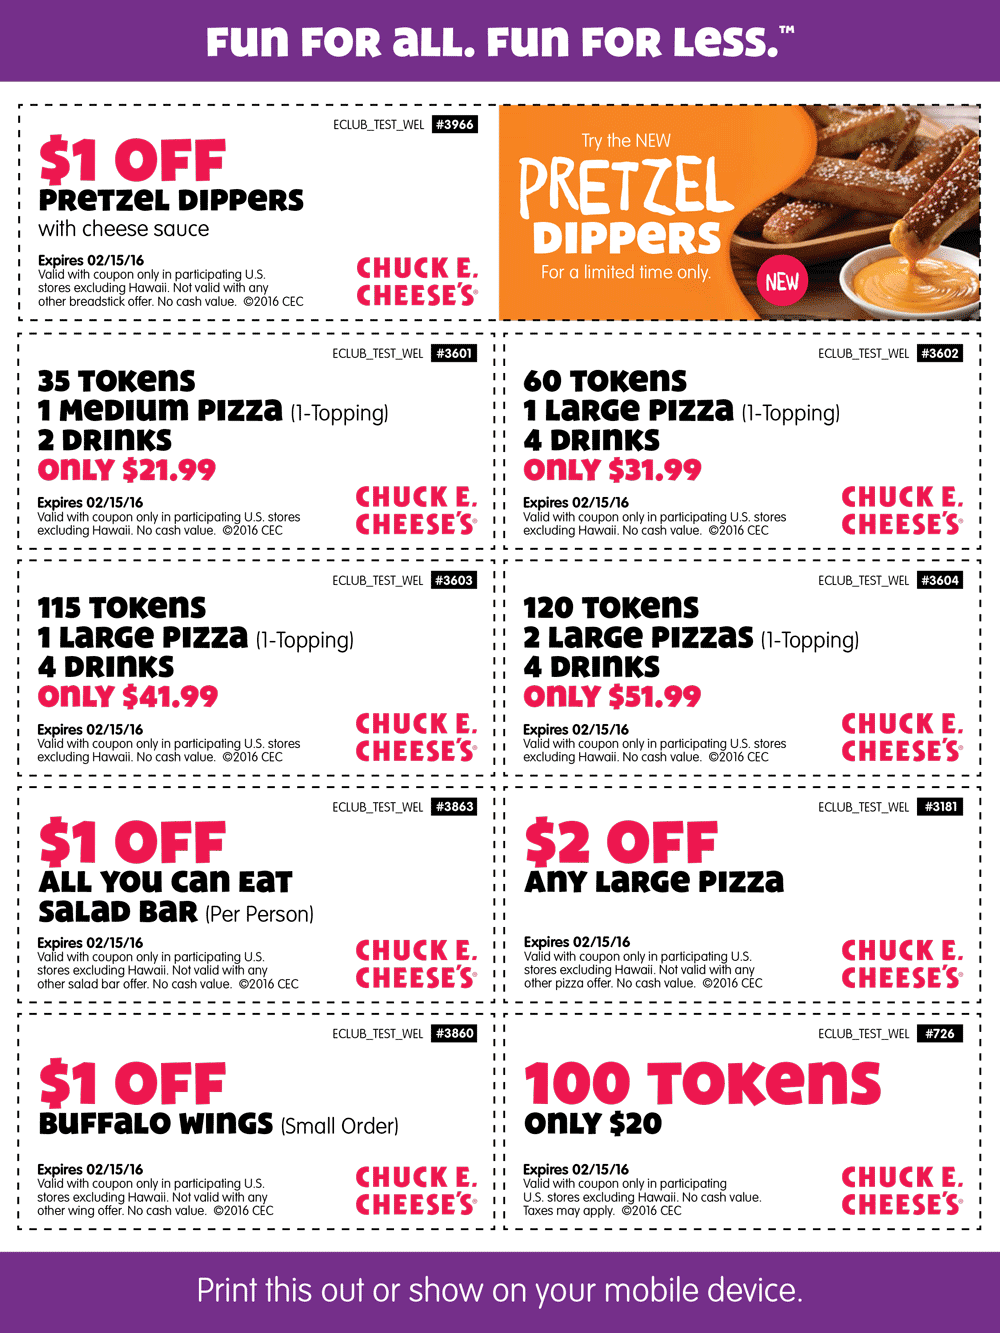 Chuck E. Cheese Coupon May 2018 100 tokens for $20 & more at Chuck E. Cheese